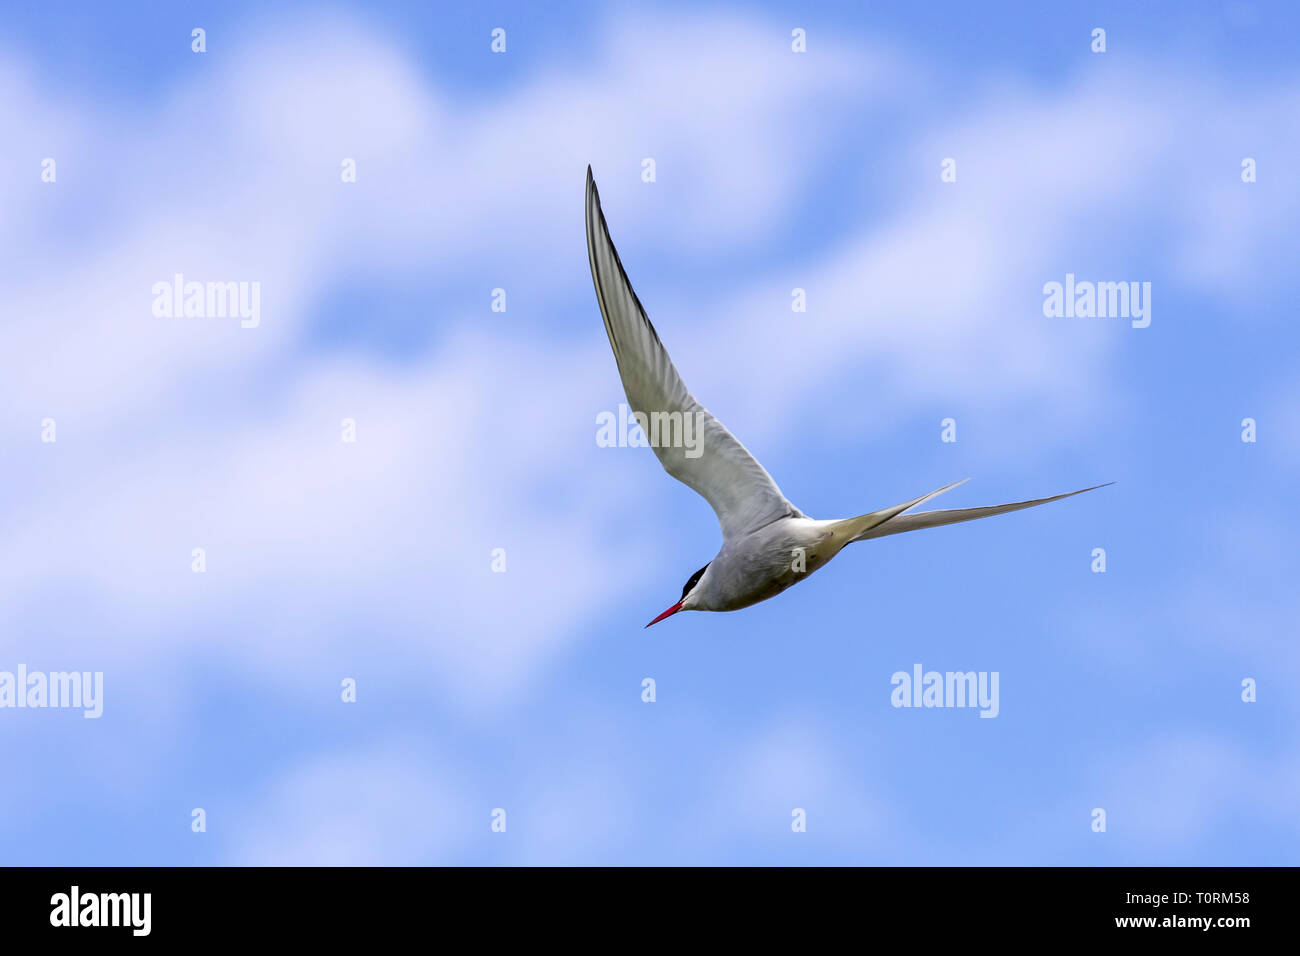 Arctic tern (Sterna paradisaea) in flight against cloudy sky - Stock Image